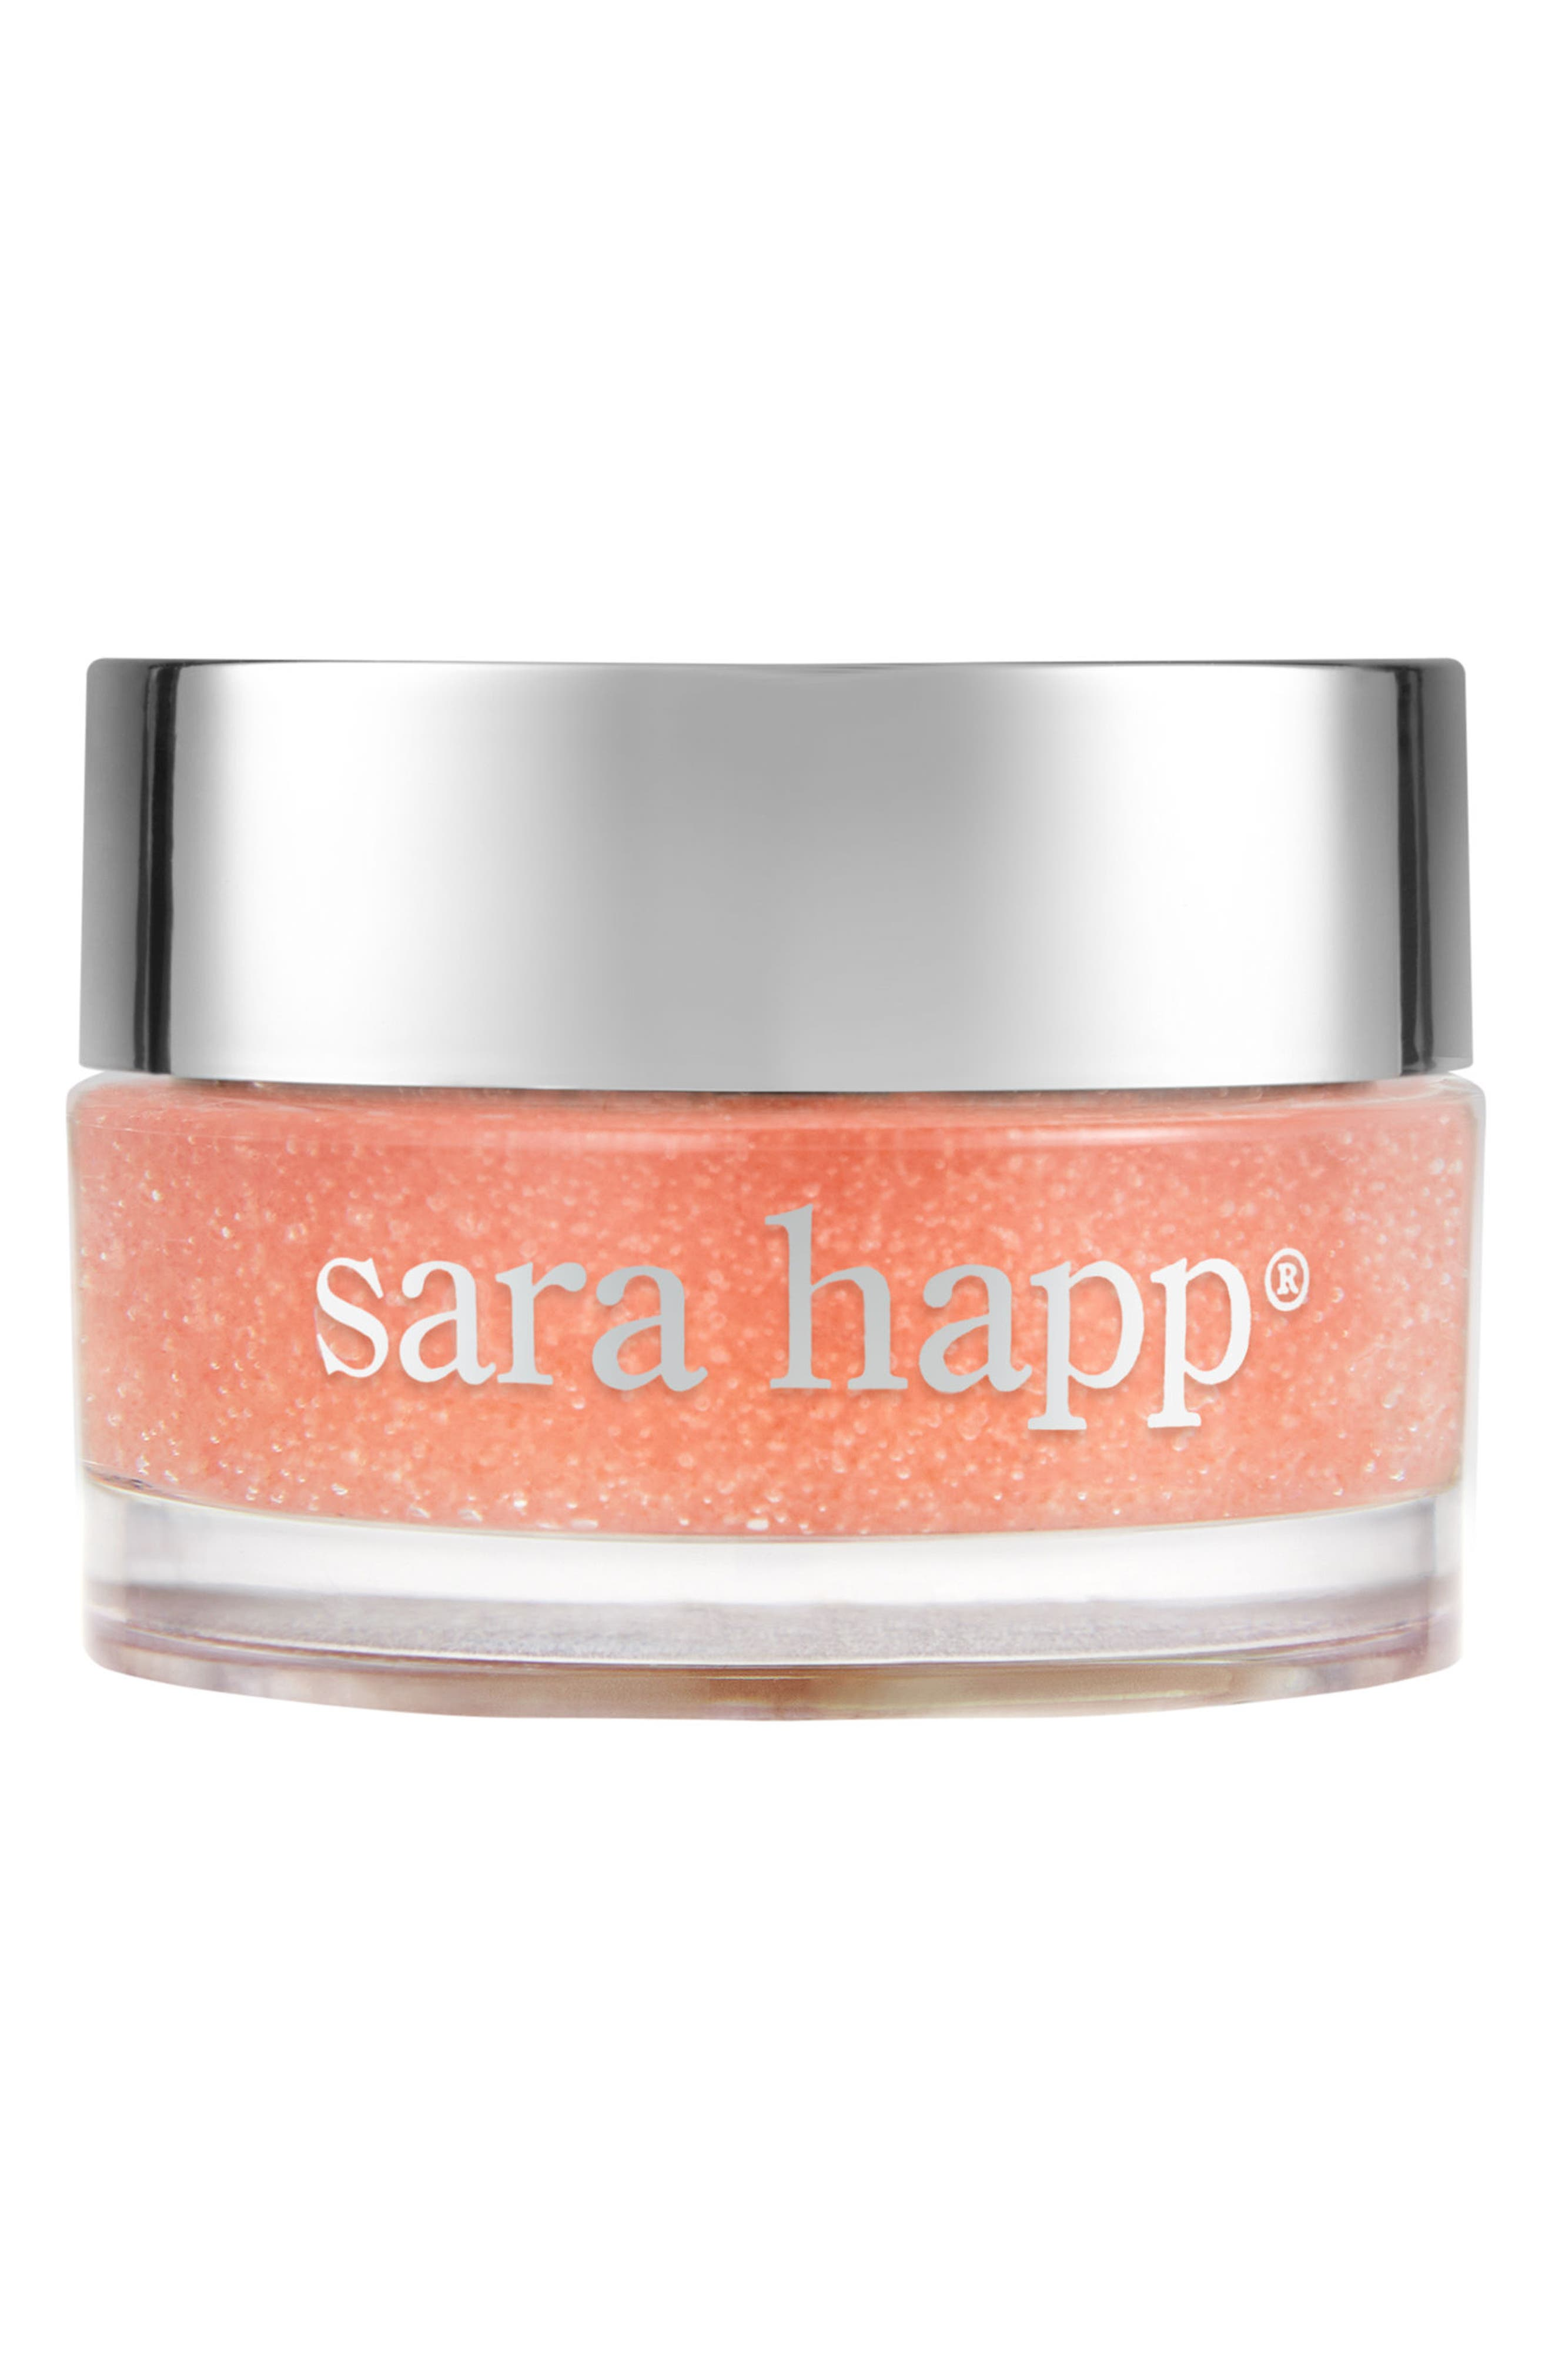 sara happ® The Lip Scrub™